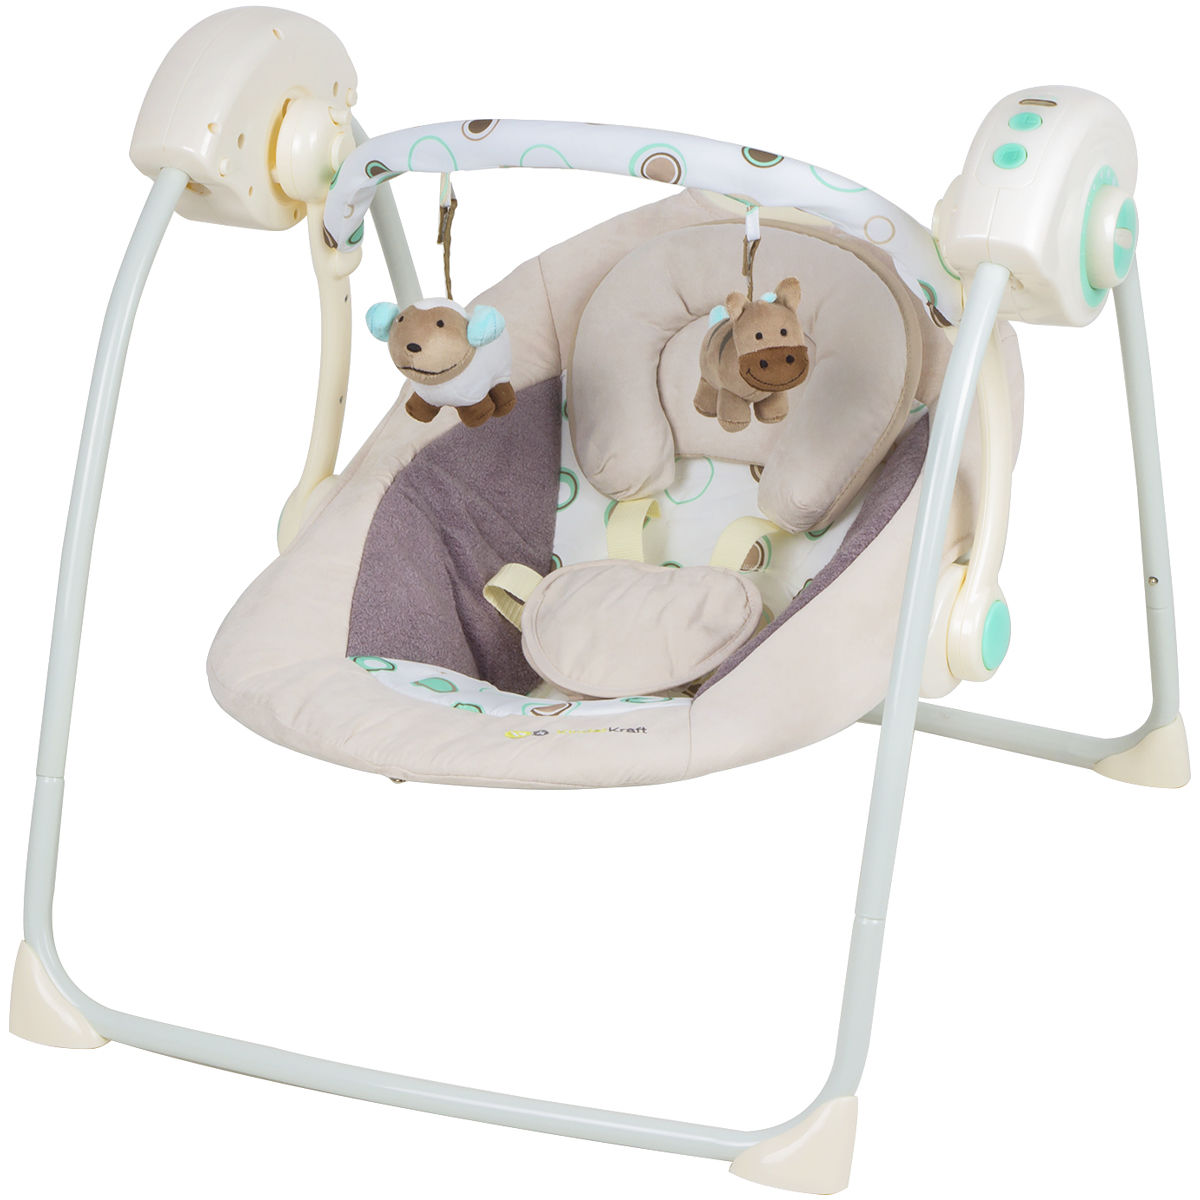 Baby Bouncing Chair Carrier Swing Seat Bouncer Play Mat